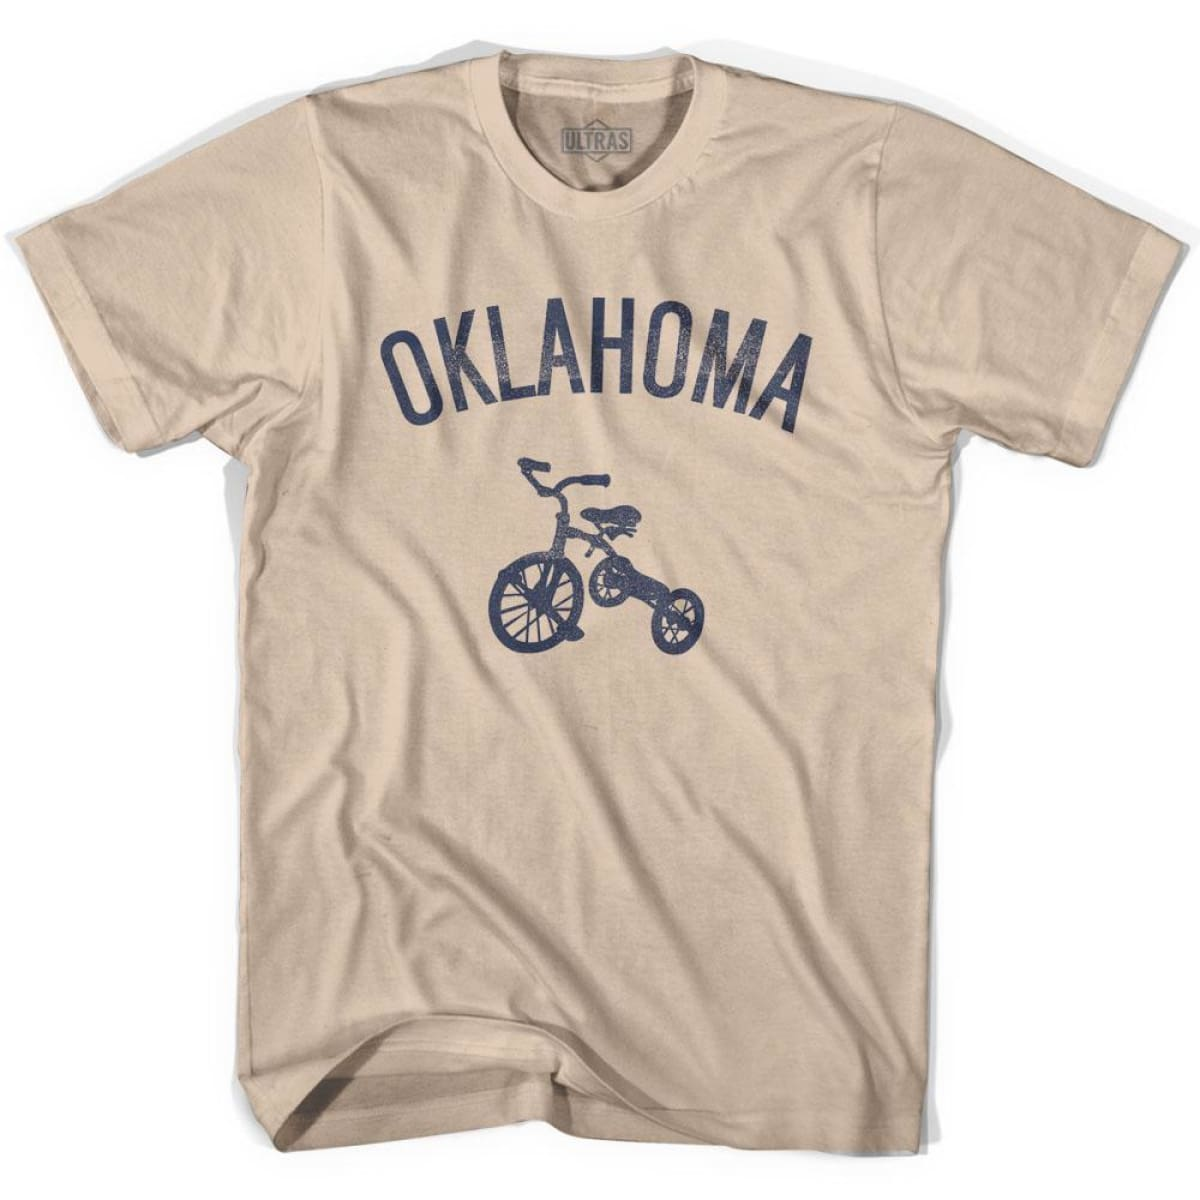 Oklahoma State Tricycle Adult Cotton T-shirt - Creme / Adult Small - Tricycle State